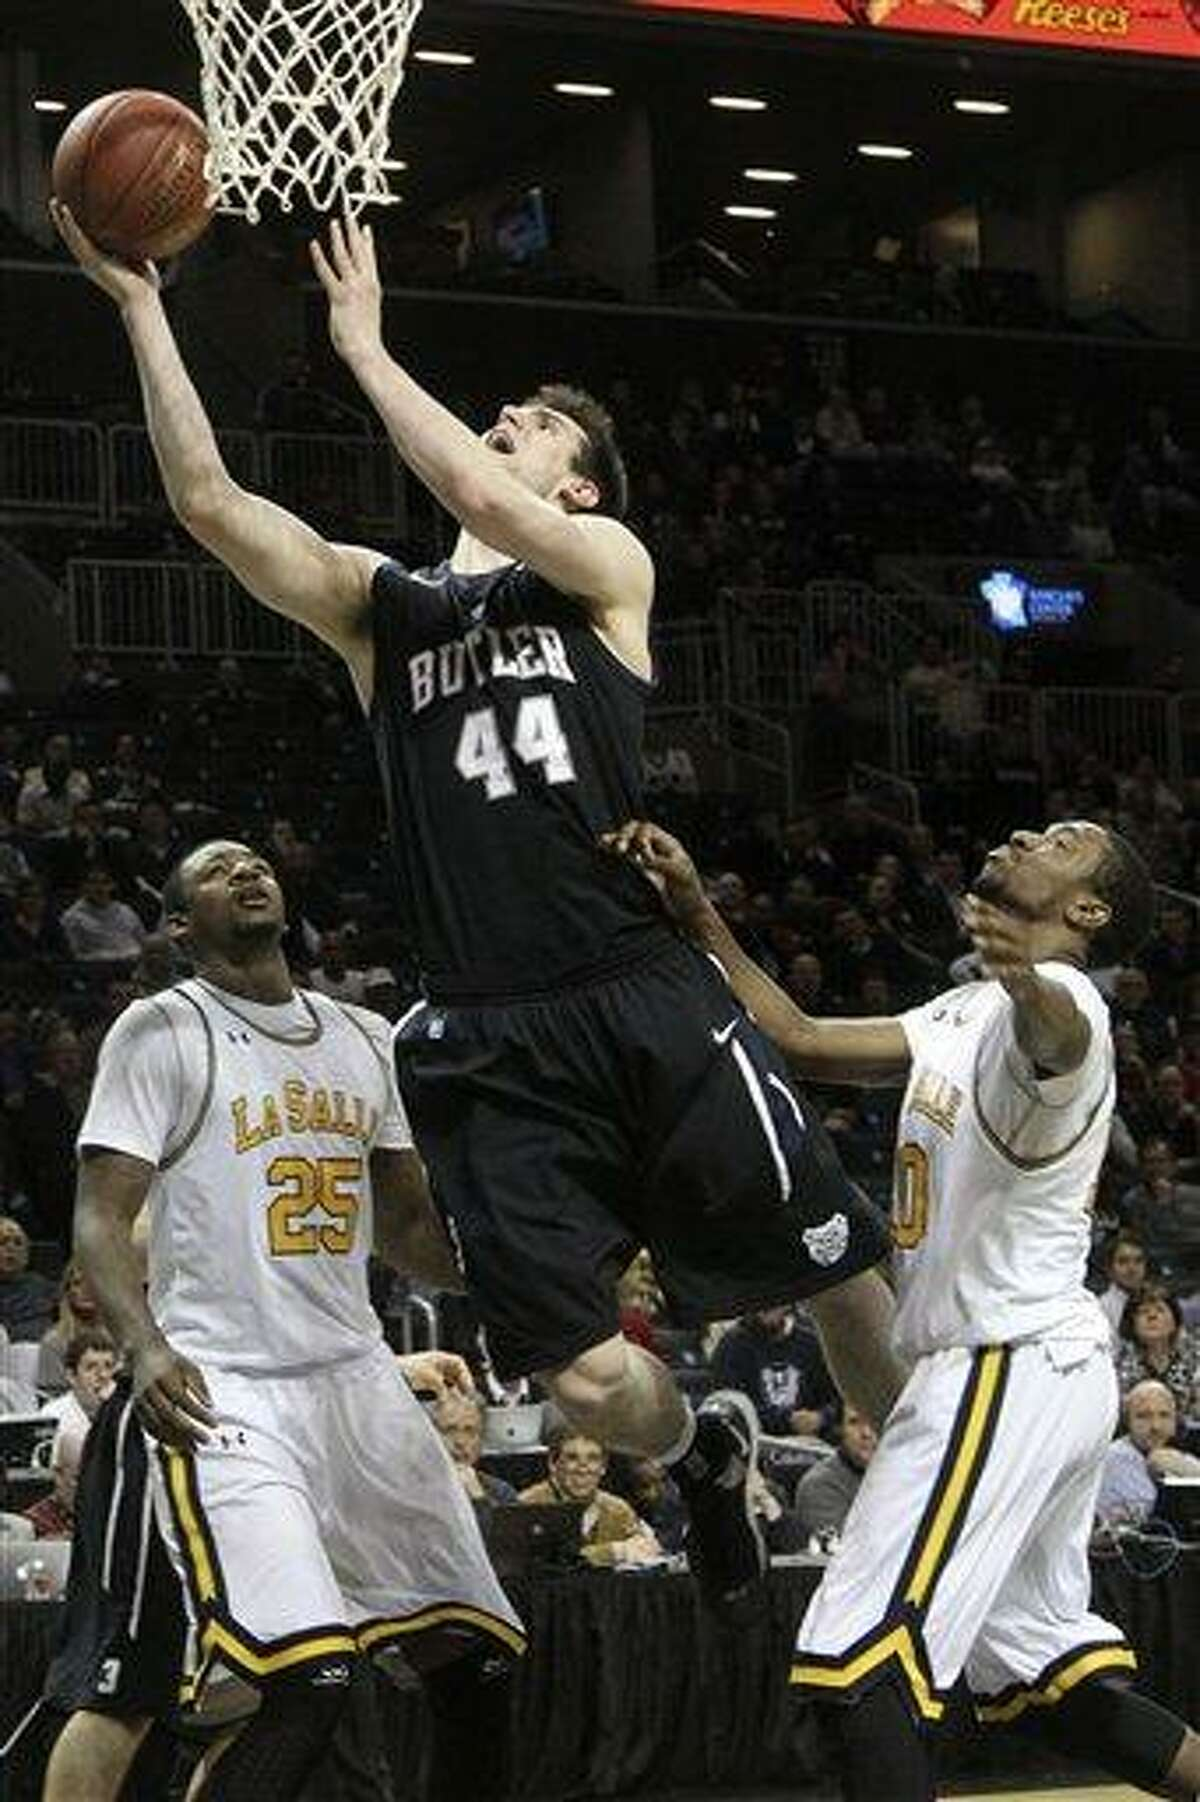 Butller's Andrew Smith (44) goes up past La Salle's Jerrell Wright (25) and Sam Mills during the second half of an NCAA college basketball game at the Atlantic 10 Conference tournament, Friday, March 15, 2013, in New York. Butler won 69-58. (AP Photo/Mary Altaffer)